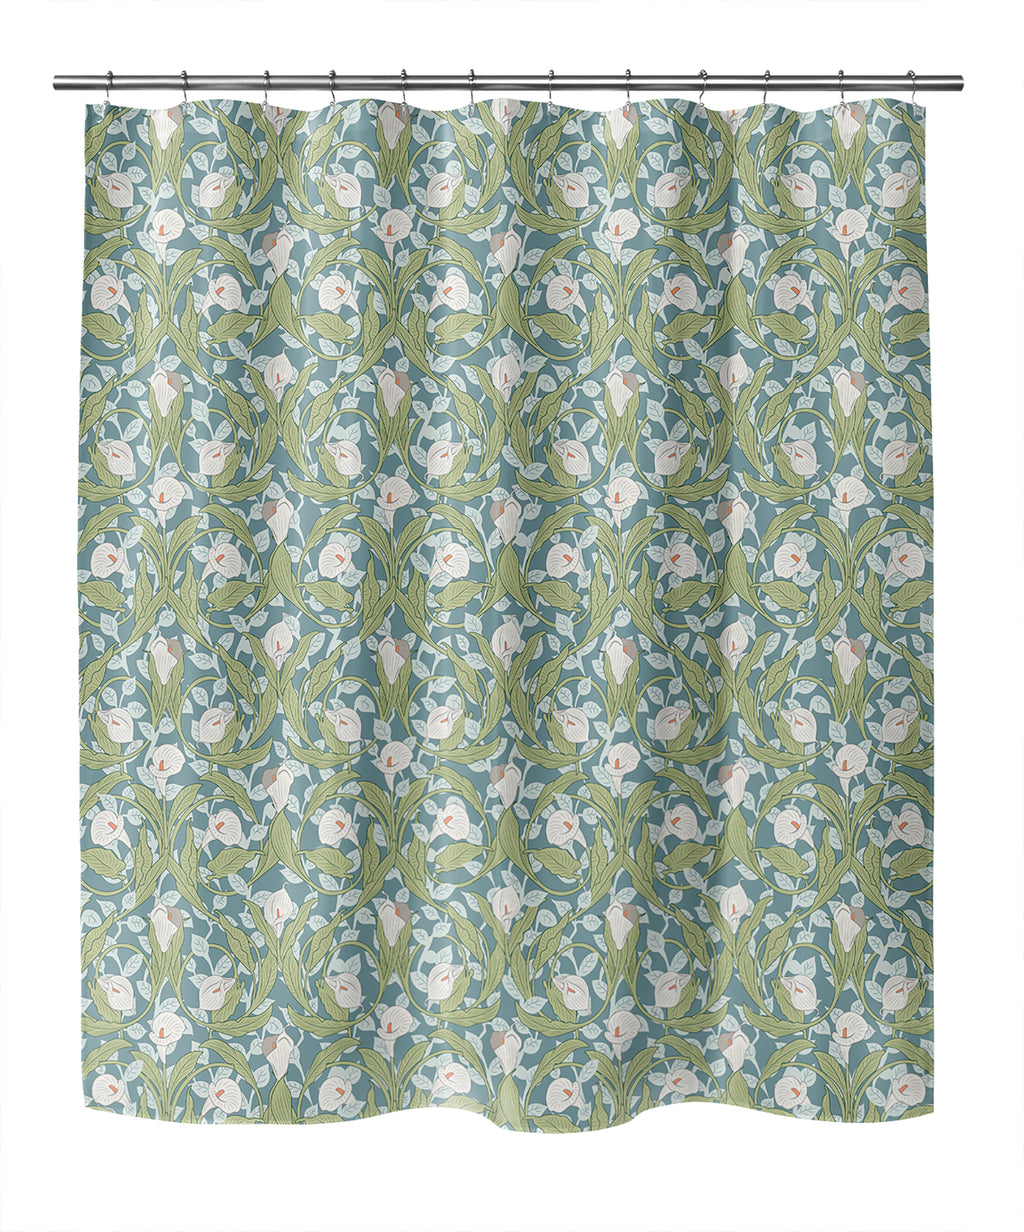 CALLA LILY FLORAL GREEN Shower Curtain By Becky Bailey